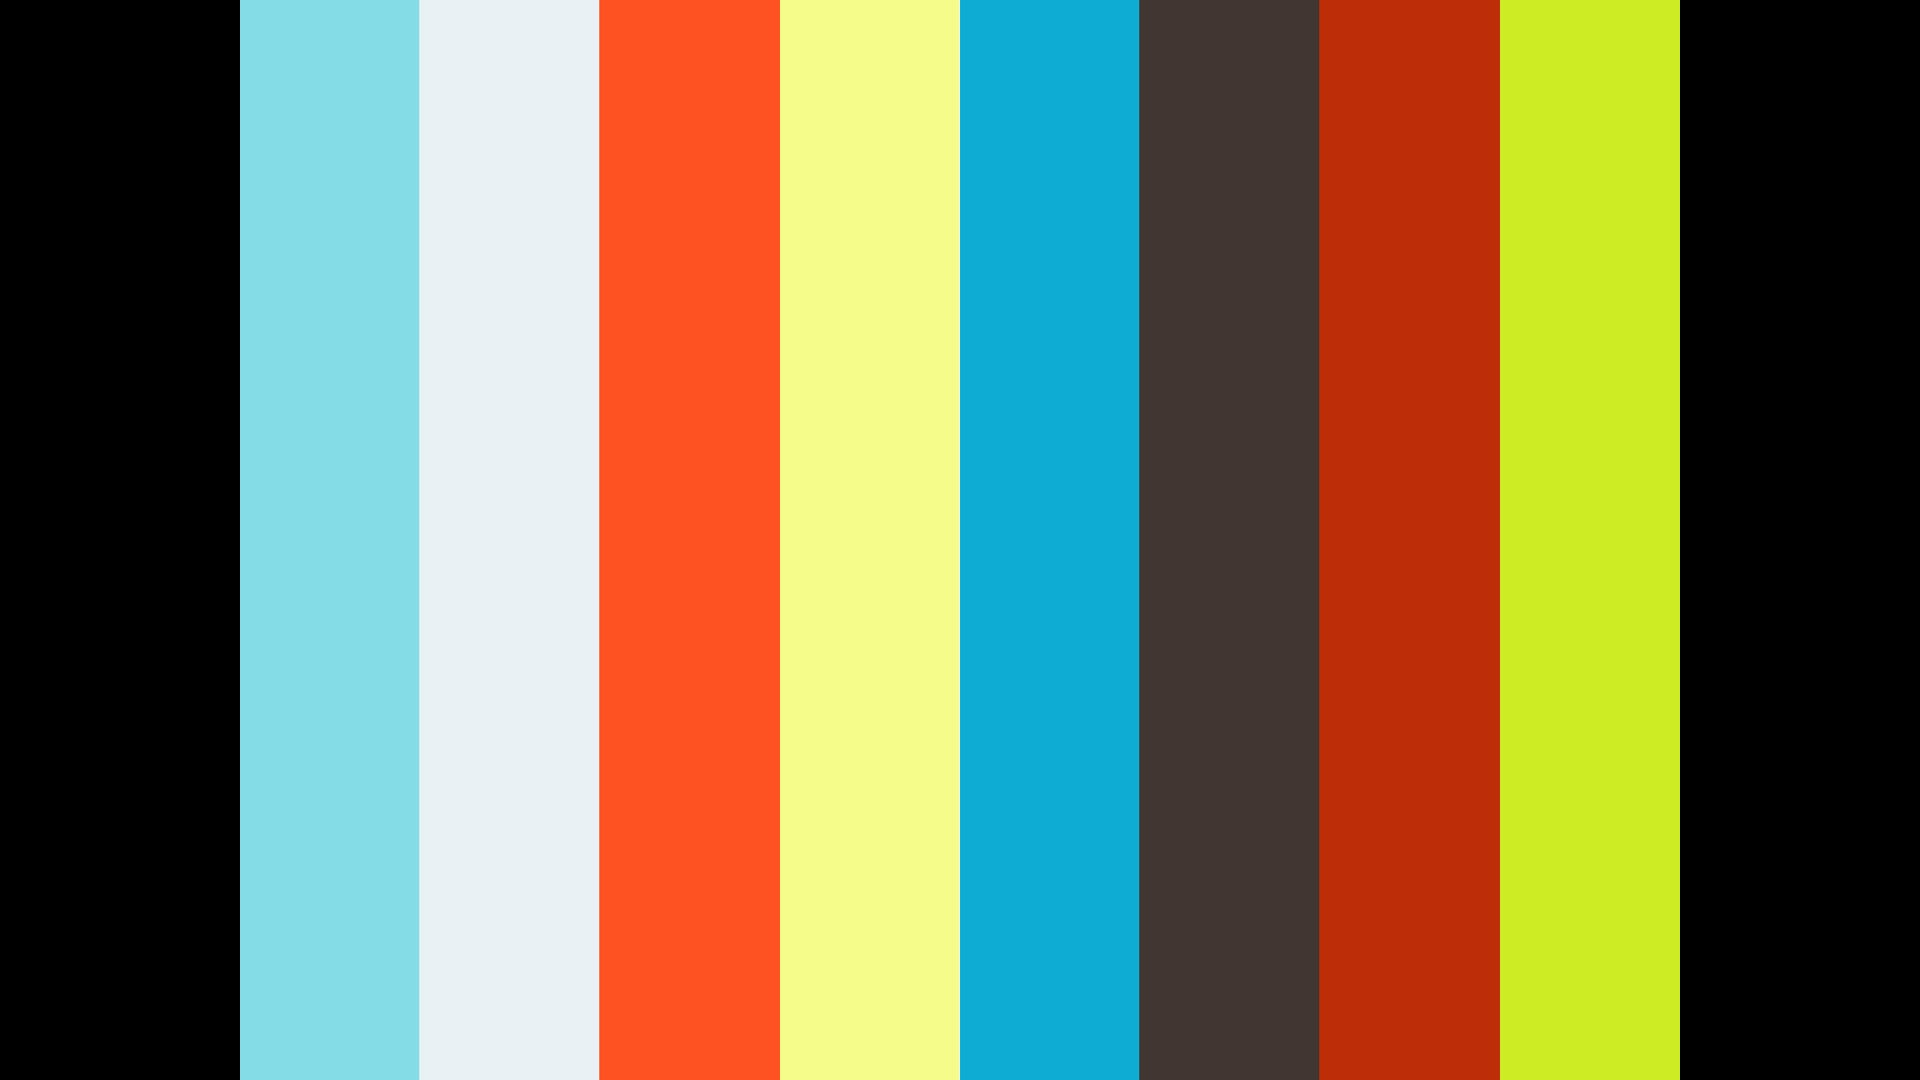 Strengthening checks and balances